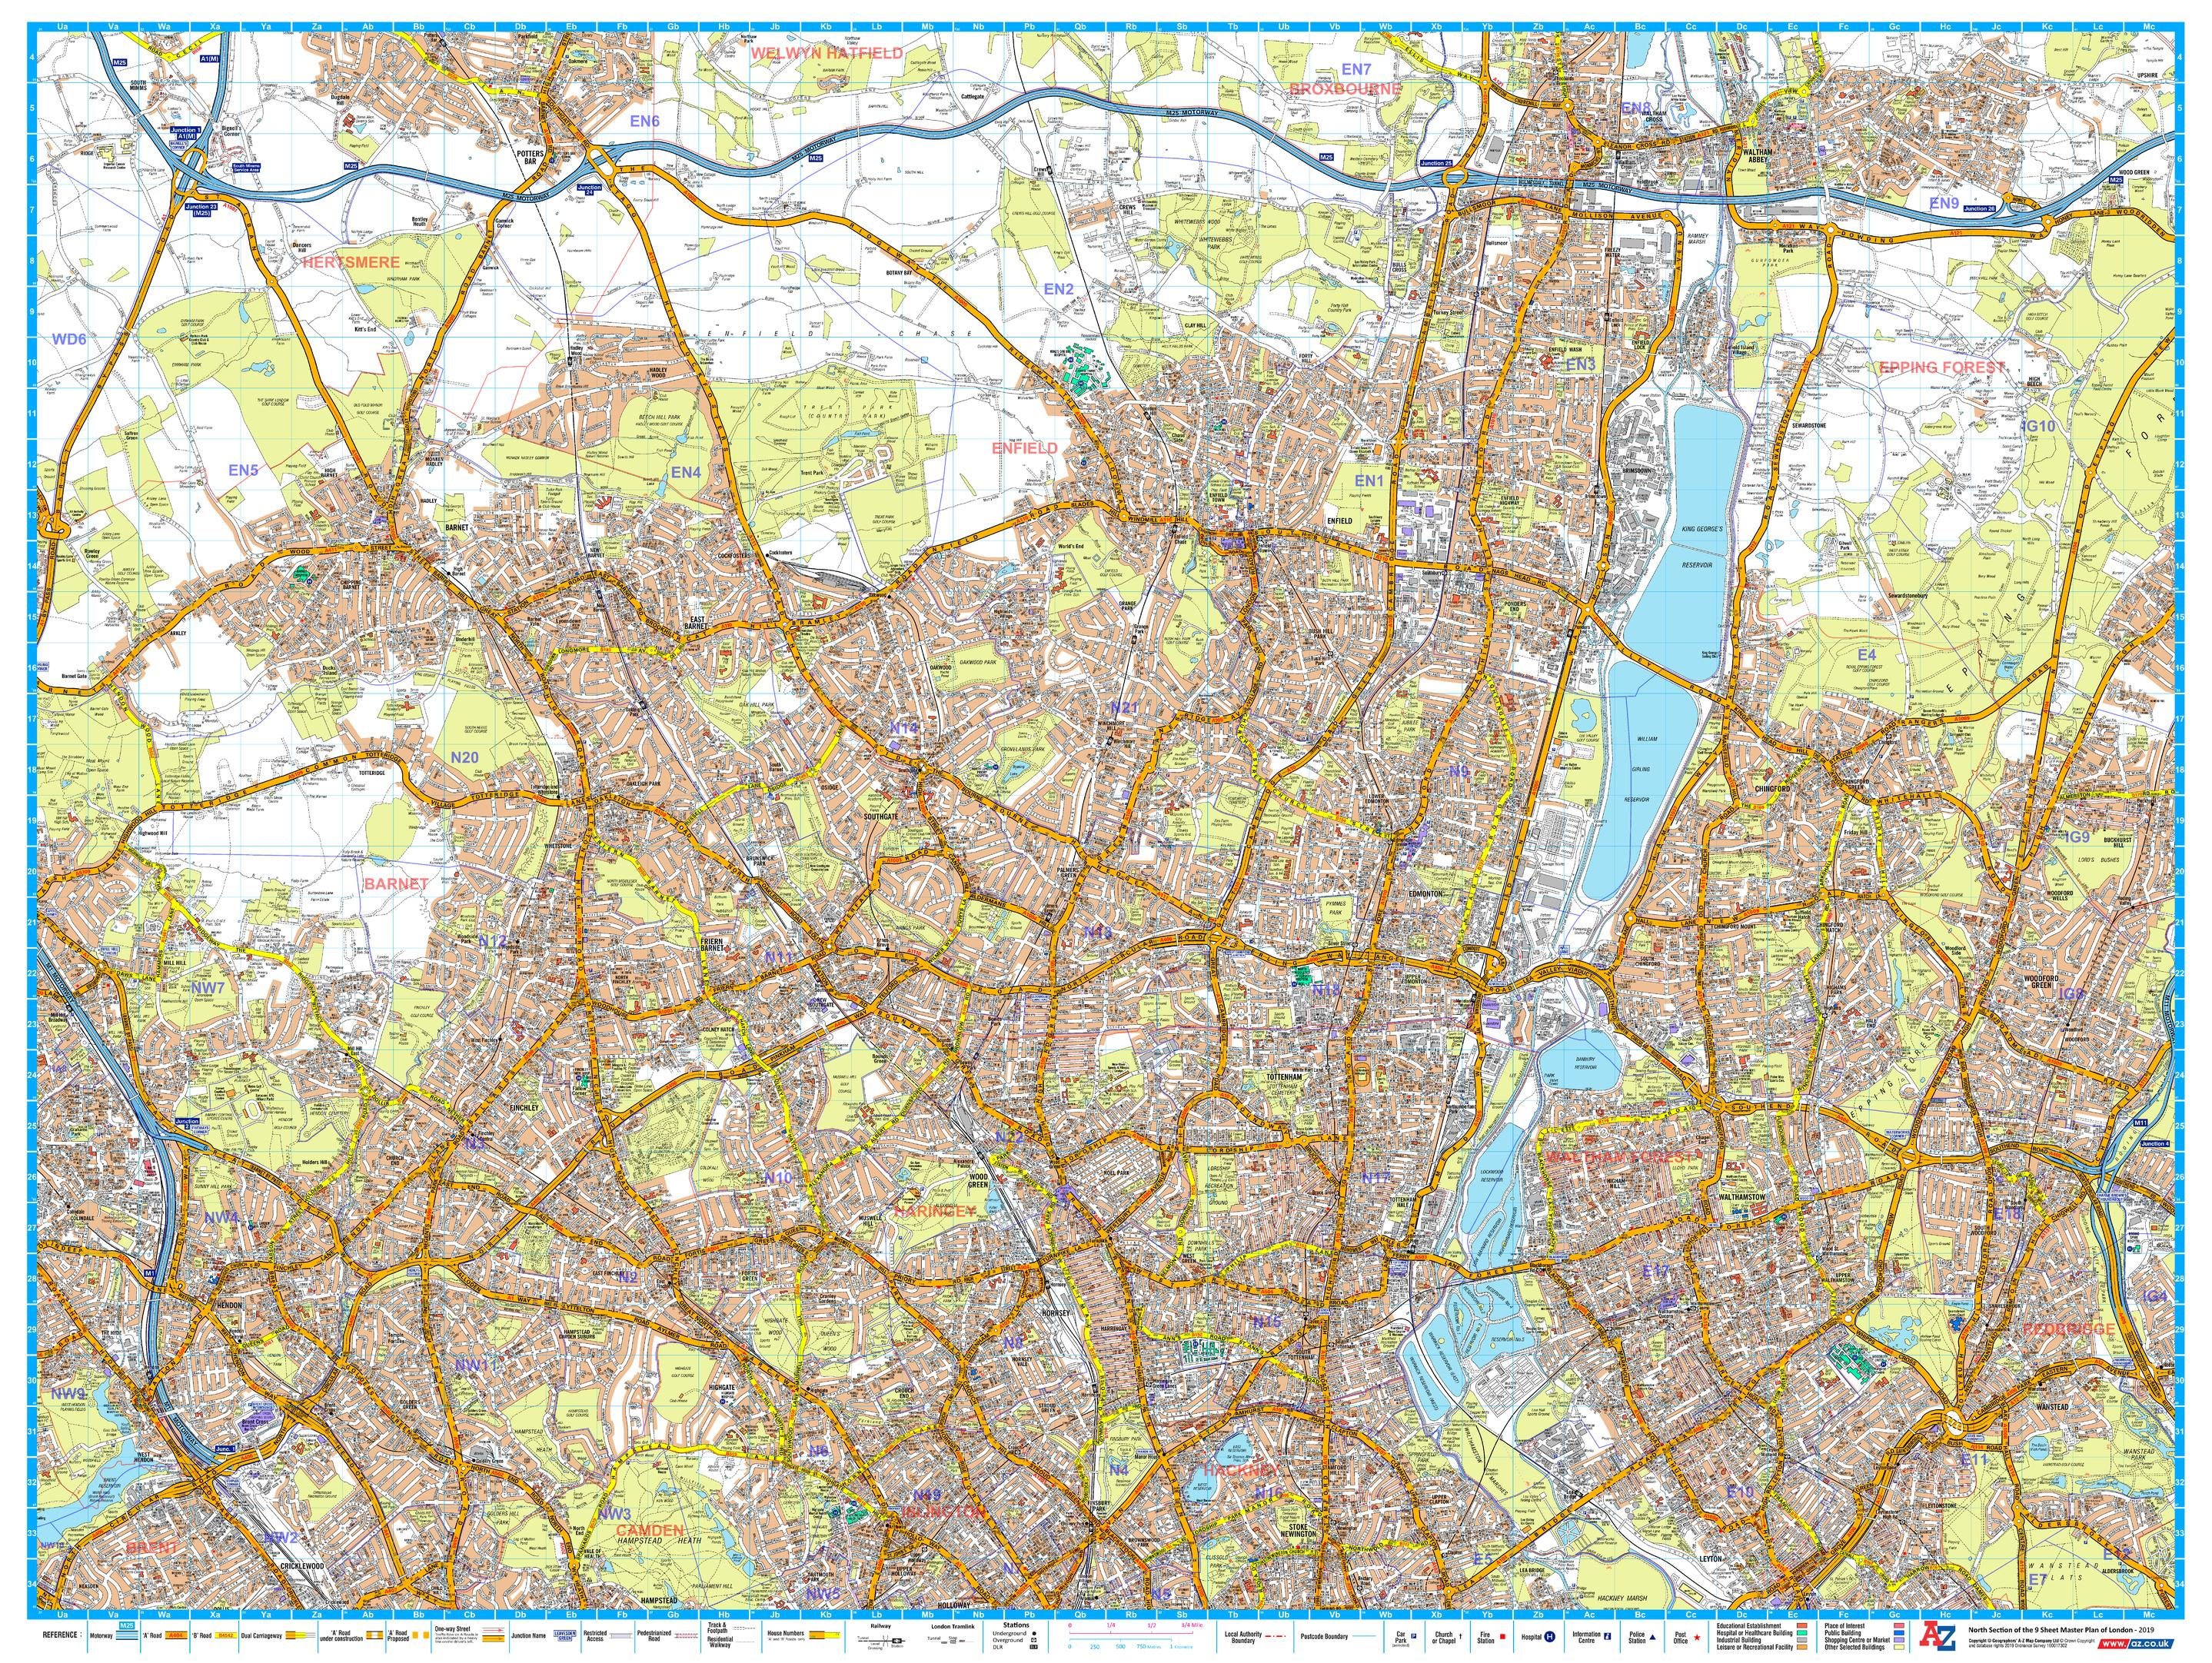 A-Z London Master Plan - North